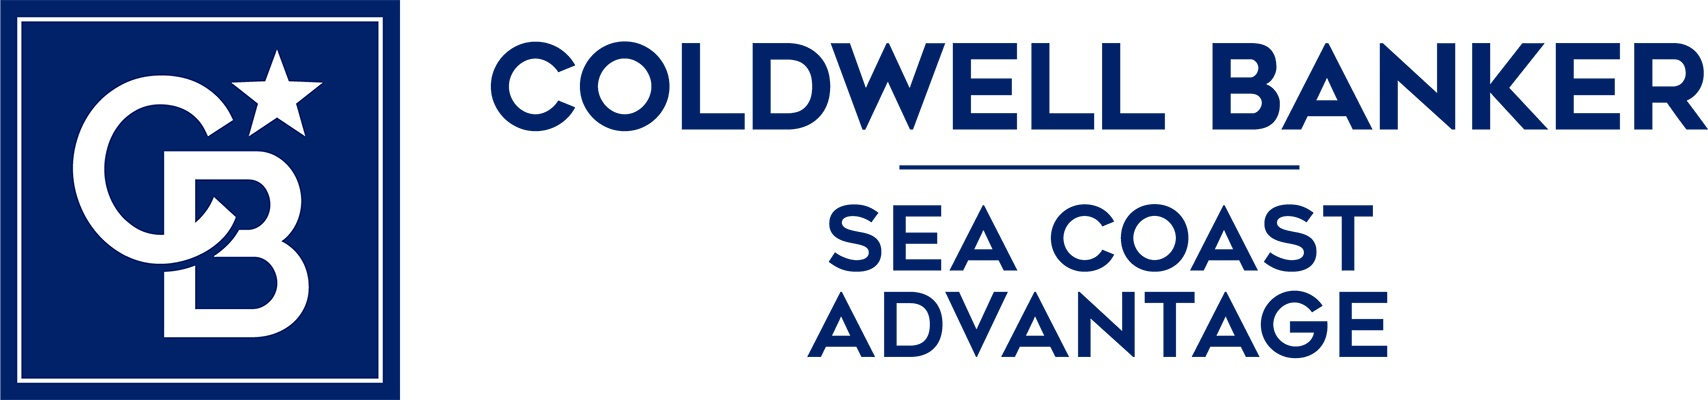 Cindy Jones - Coldwell Banker Sea Coast Advantage Realty